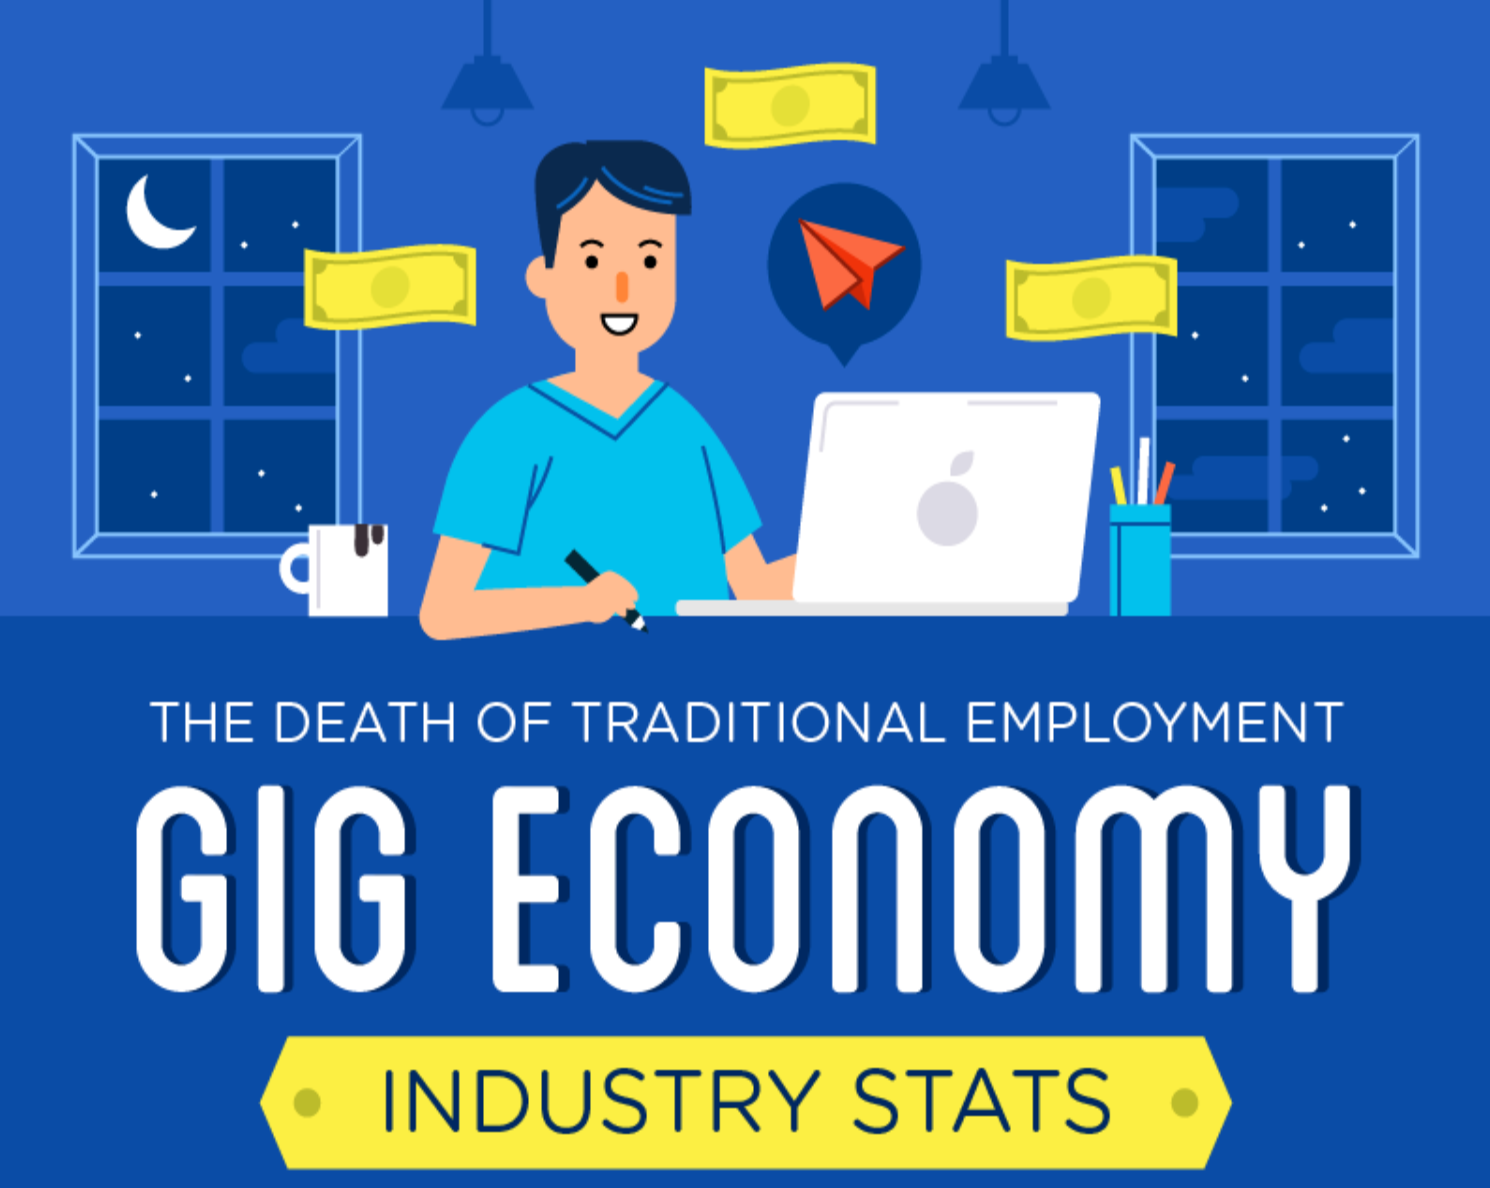 Gig Economy Industry Stats; graphic courtesy of author.